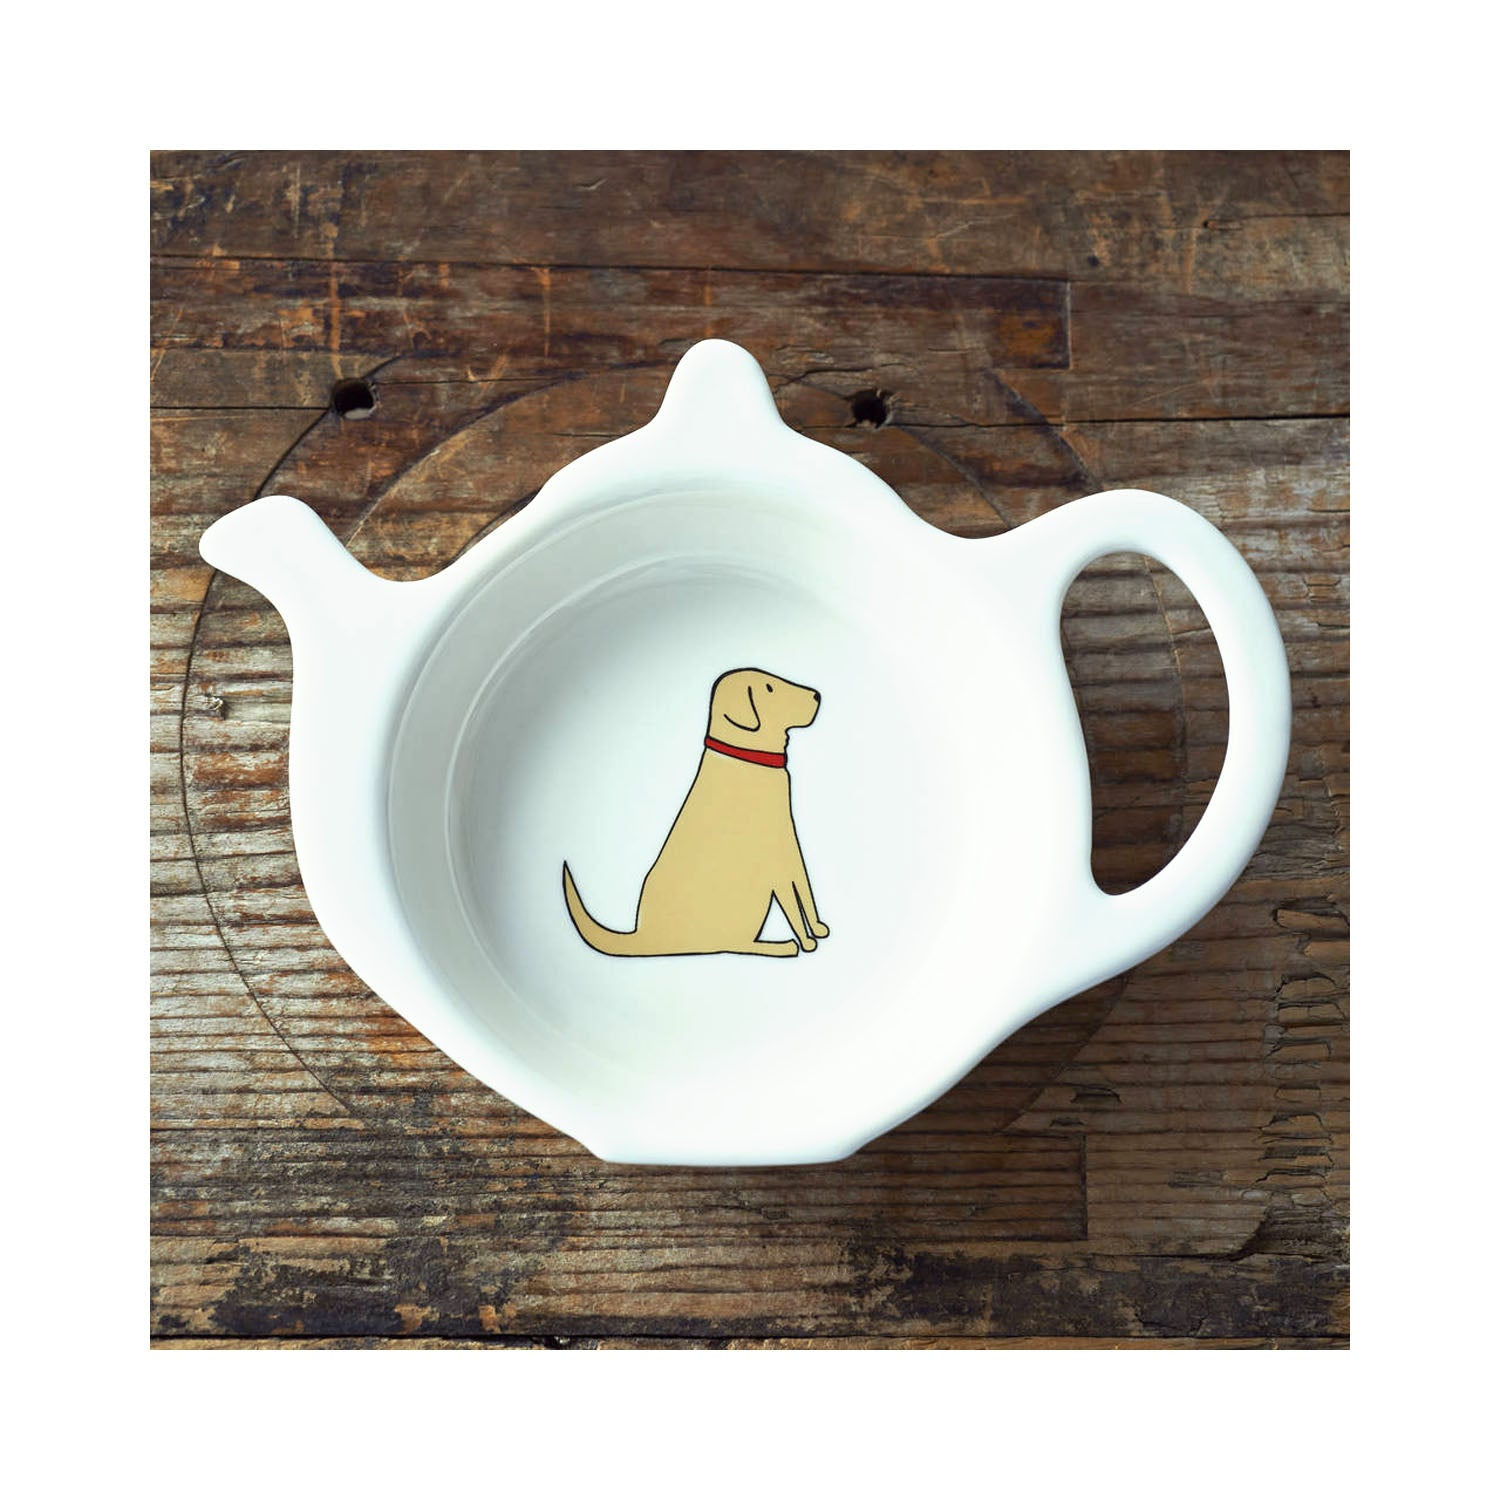 Dog Lover Gifts available at Dog Krazy Gifts - Daisy The Yellow Labrador Teabag Dish - part of the Sweet William range available from Dog Krazy Gifts